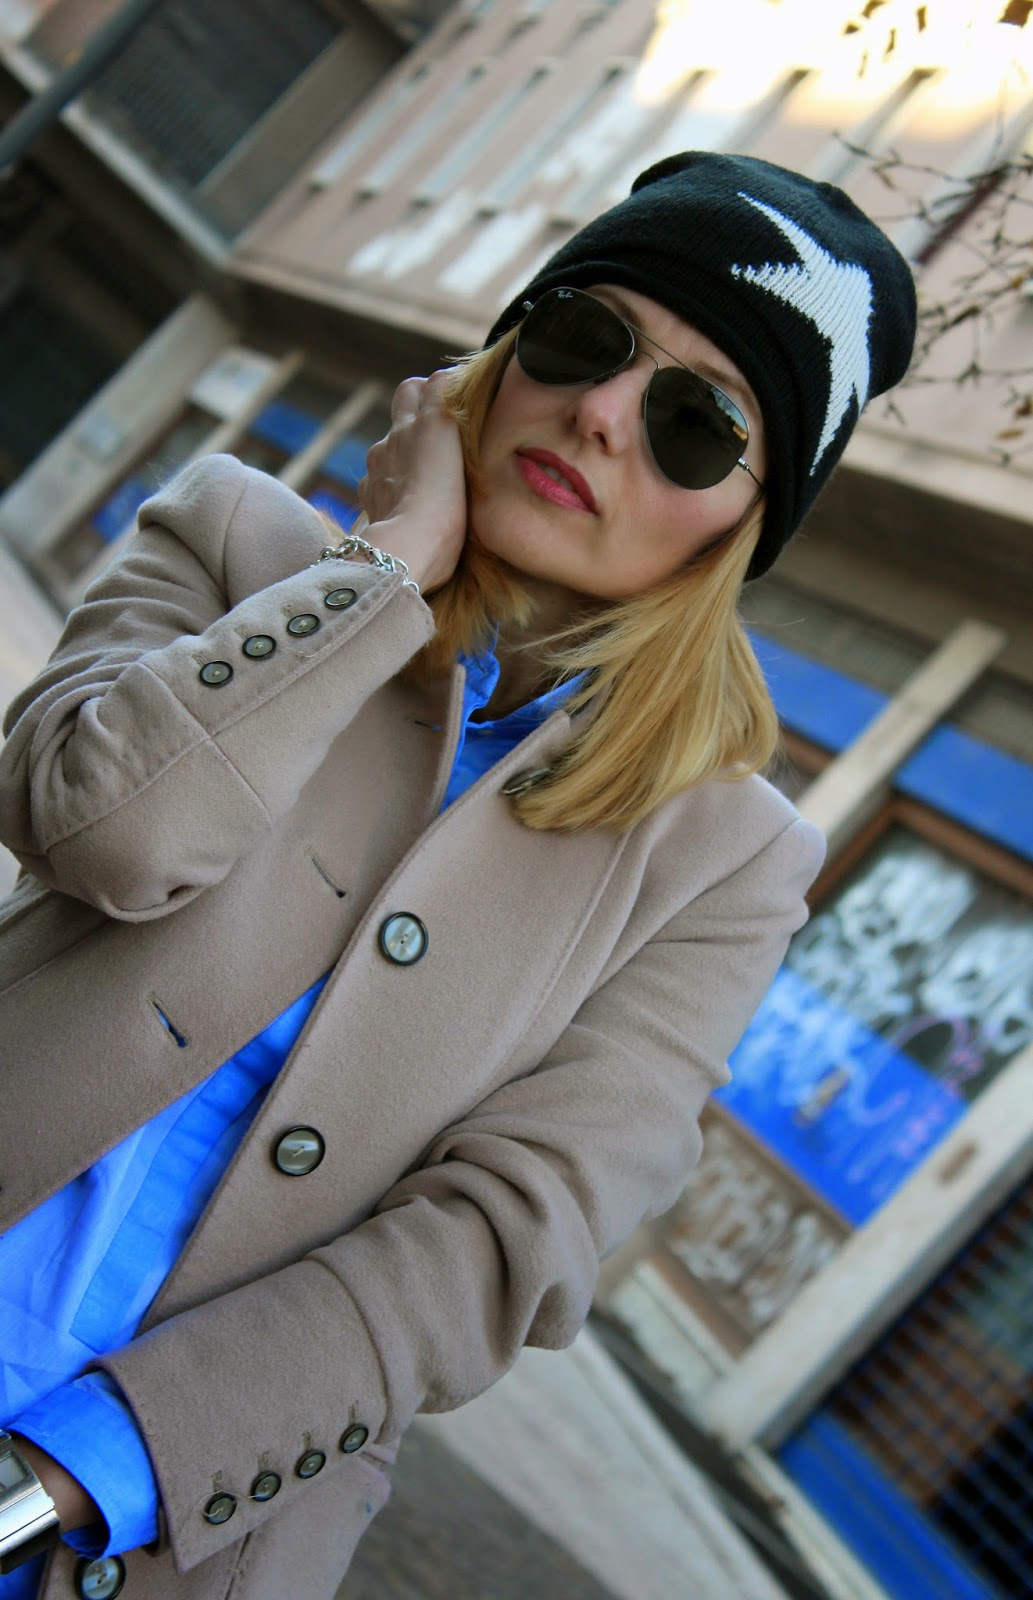 Eniwhere Fashion - Camel coat and Coq Sportif